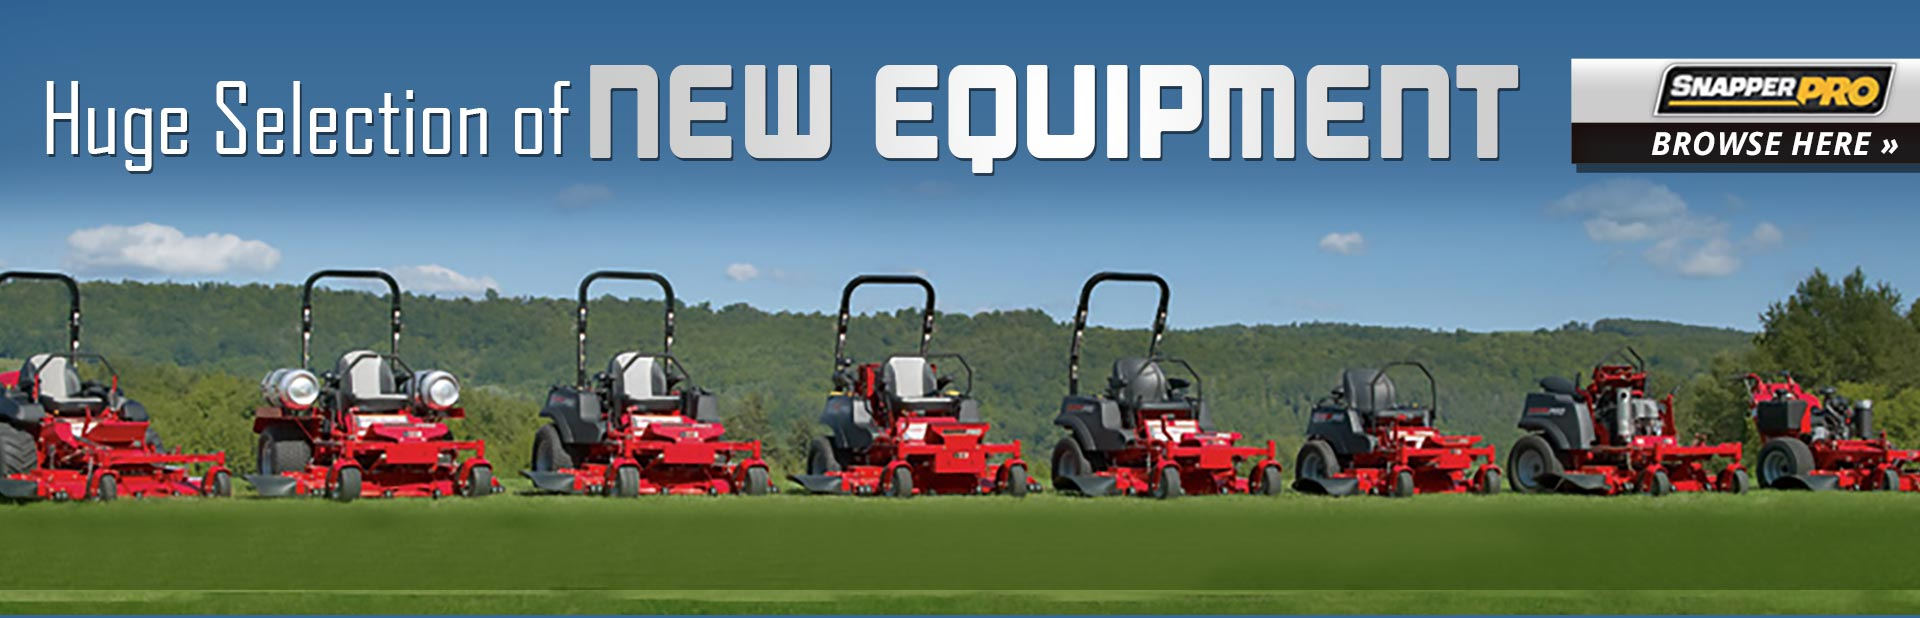 Snapper Pro Lawn Mowers: Click here to view the models.